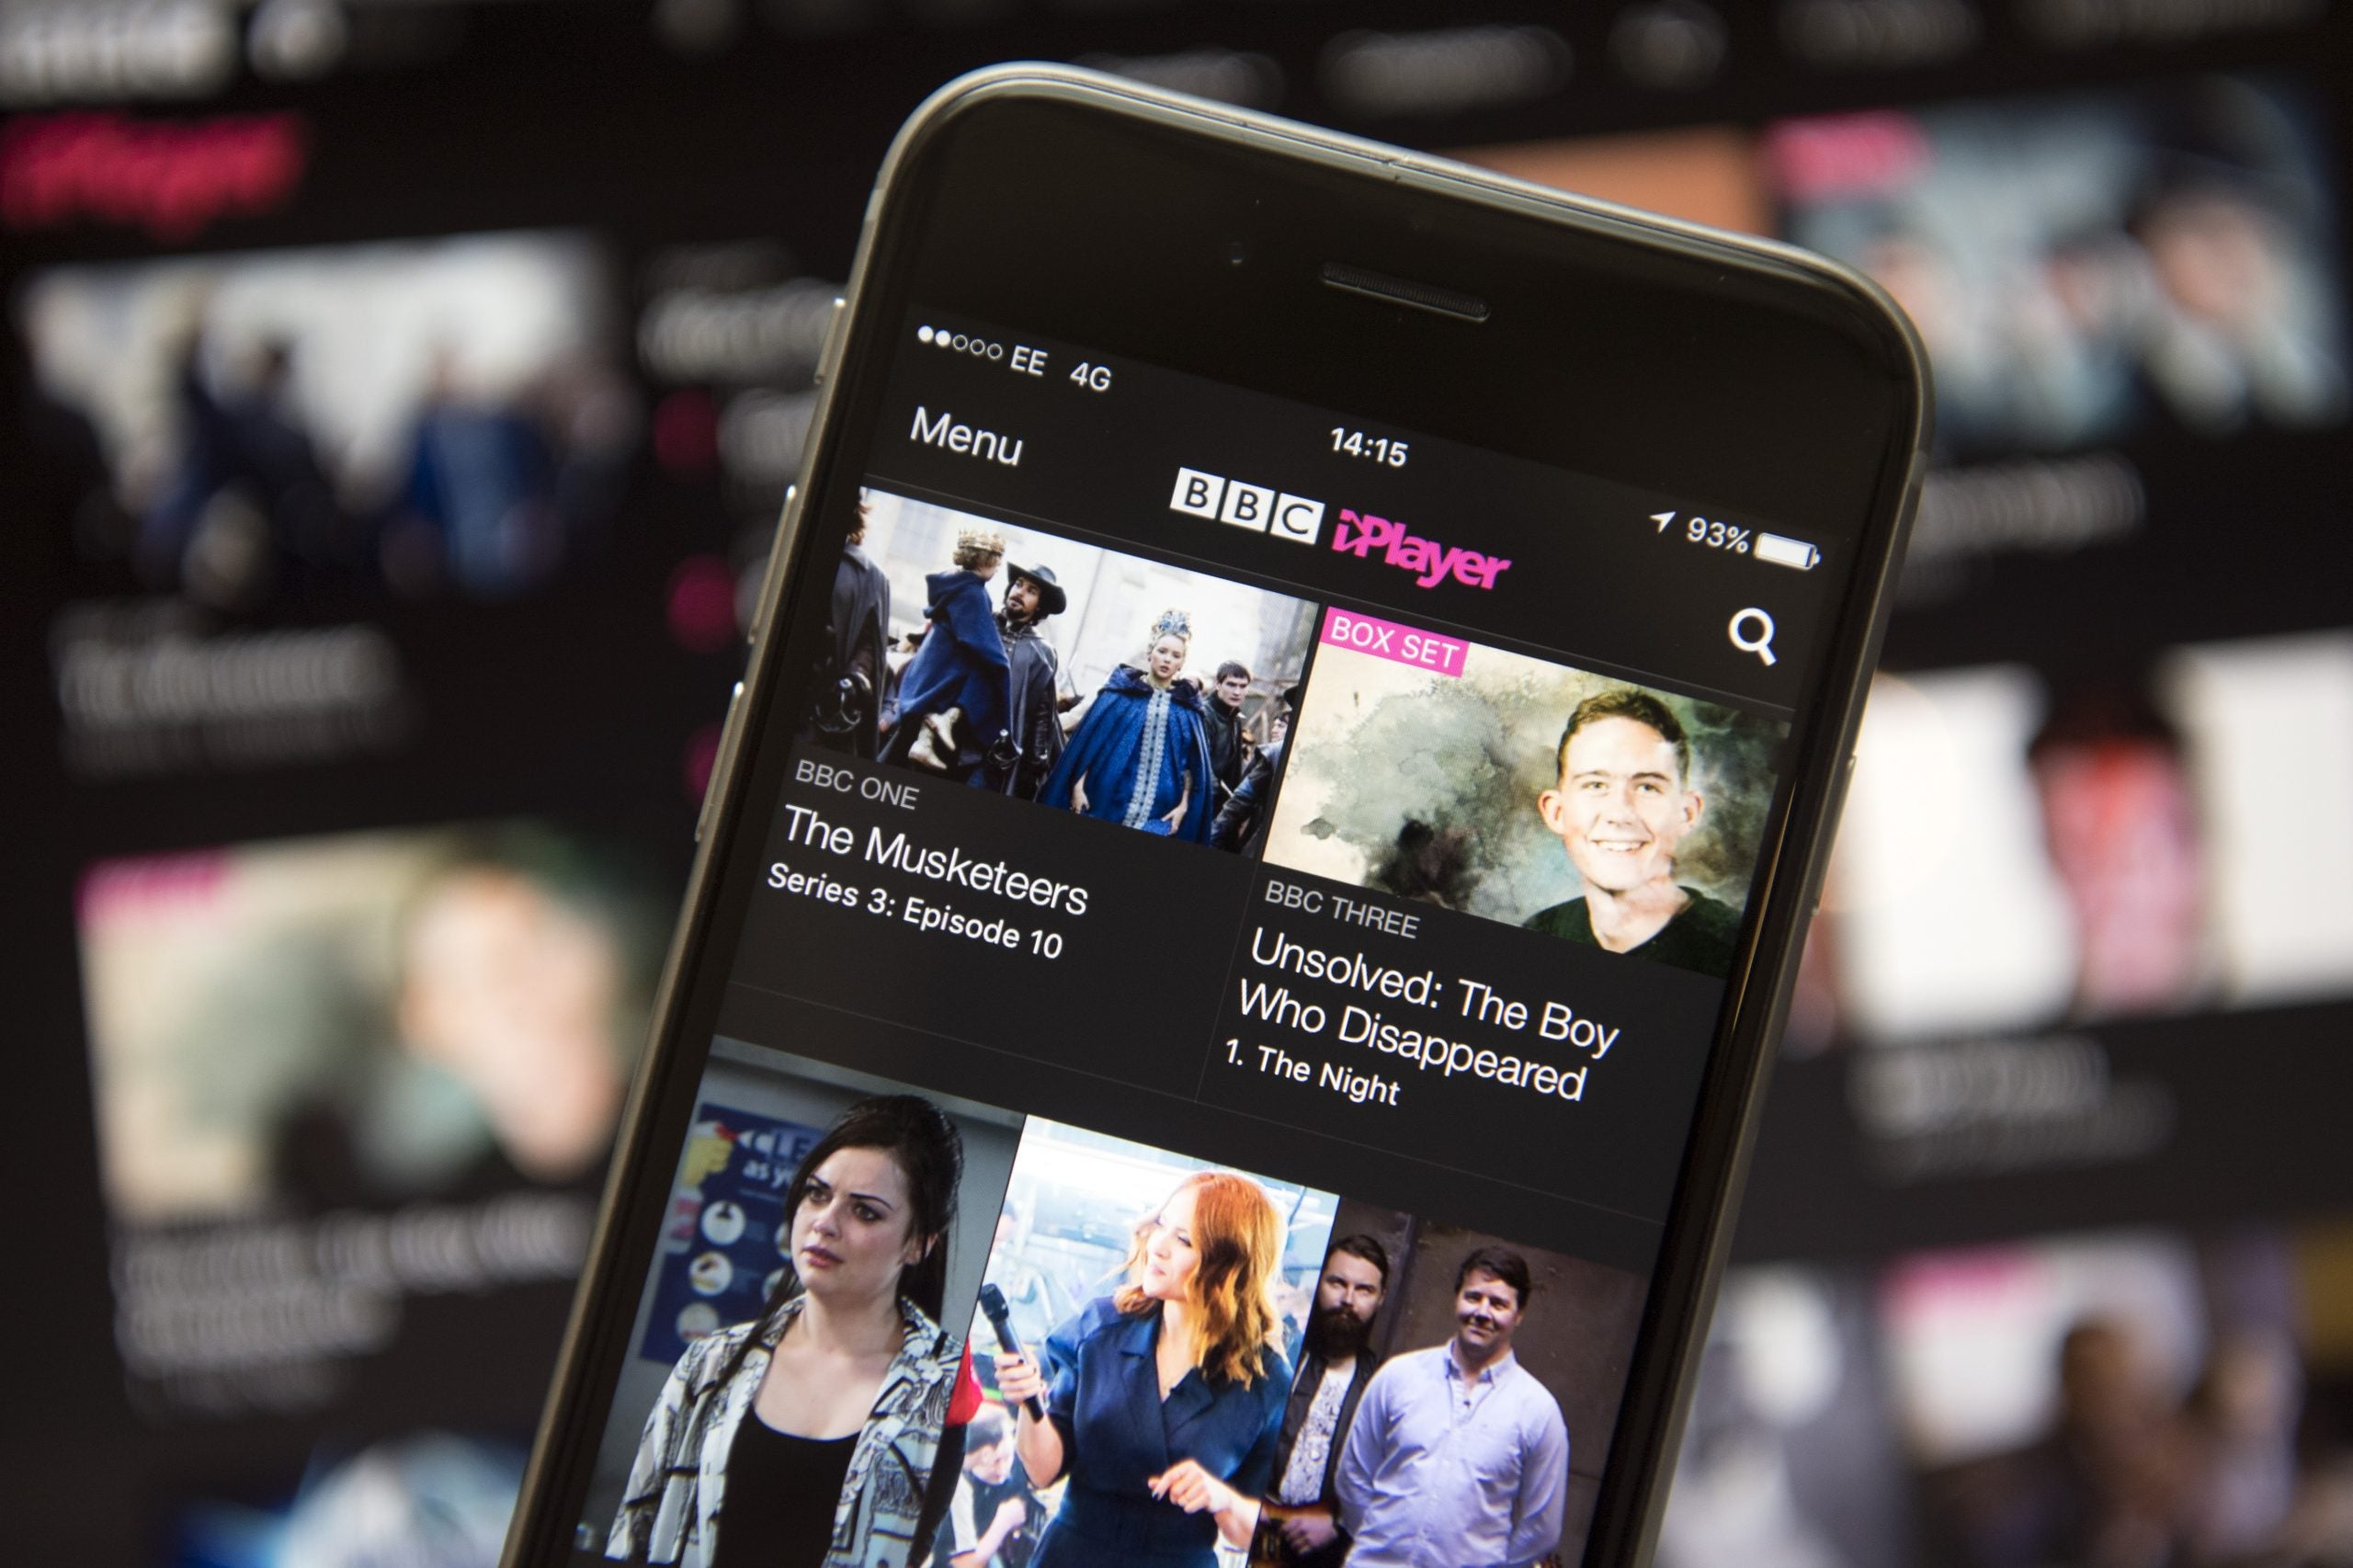 BBC and ITV are in talks over a new, joint streaming service. But what's it for?